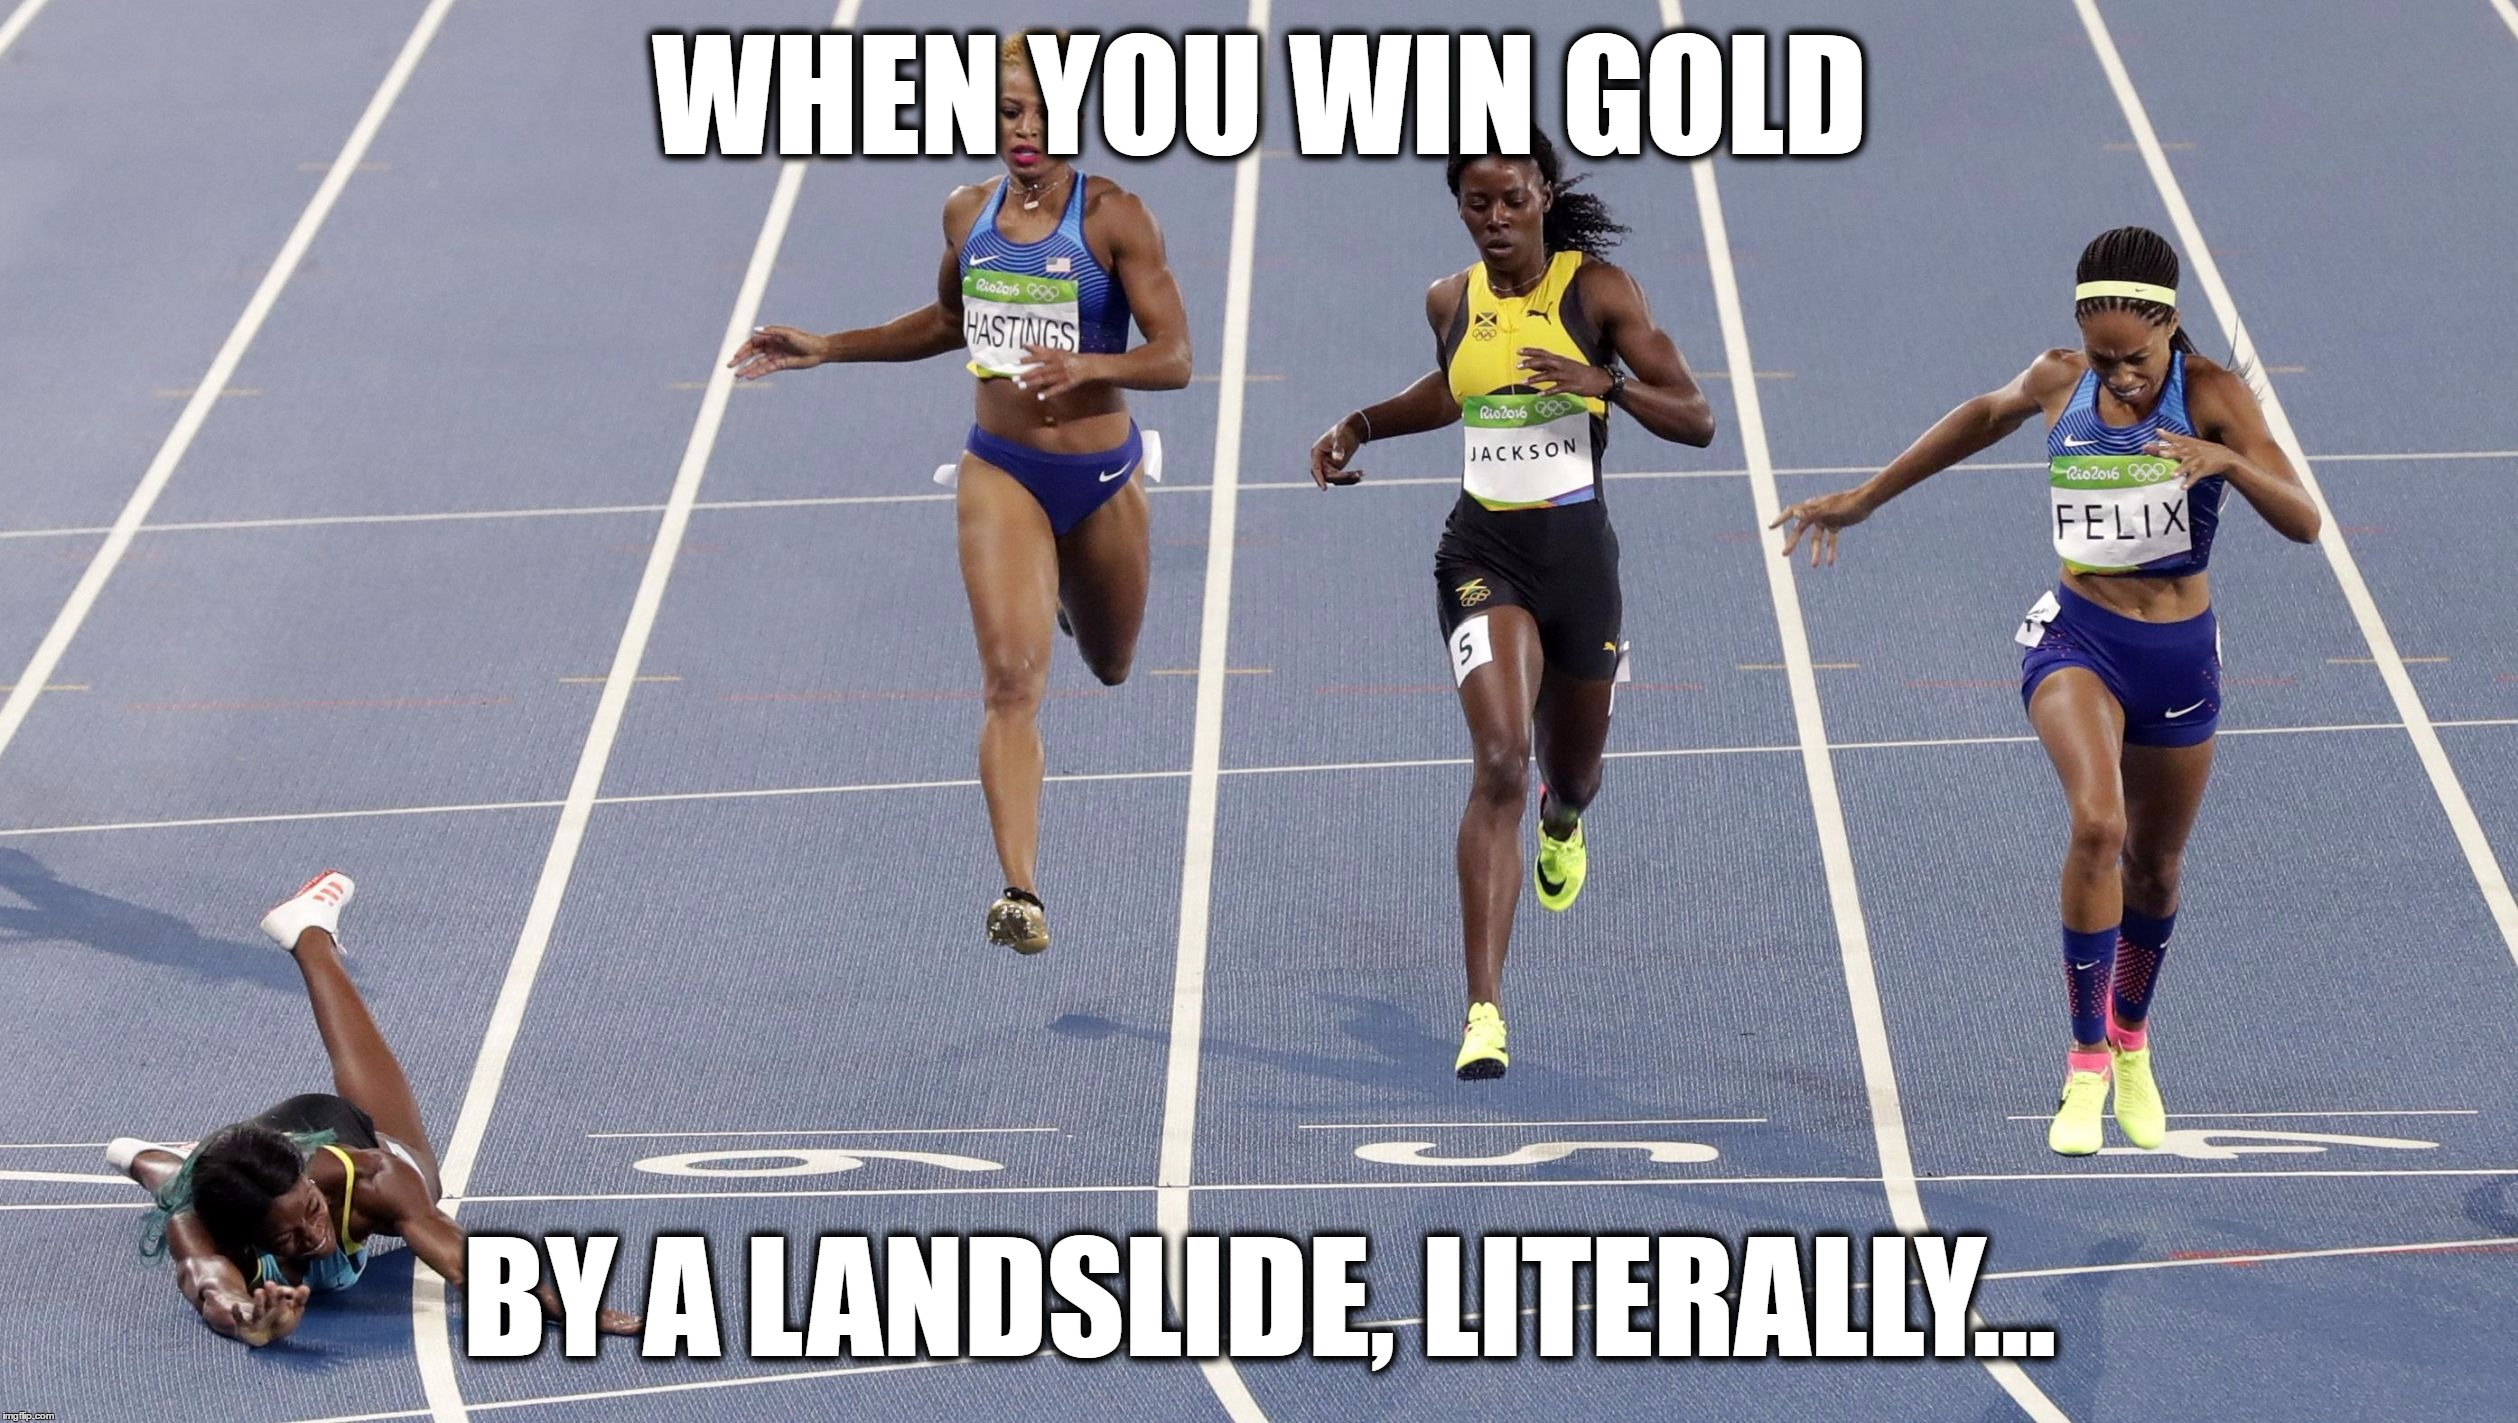 Shaunae Miller Of Bahamas Won The 400m Final By Diving Across The Finish Line | WHEN YOU WIN GOLD BY A LANDSLIDE, LITERALLY... | image tagged in shaunae miller's finish line dive,memes,funny,2016 rio olympics,slide,gold | made w/ Imgflip meme maker